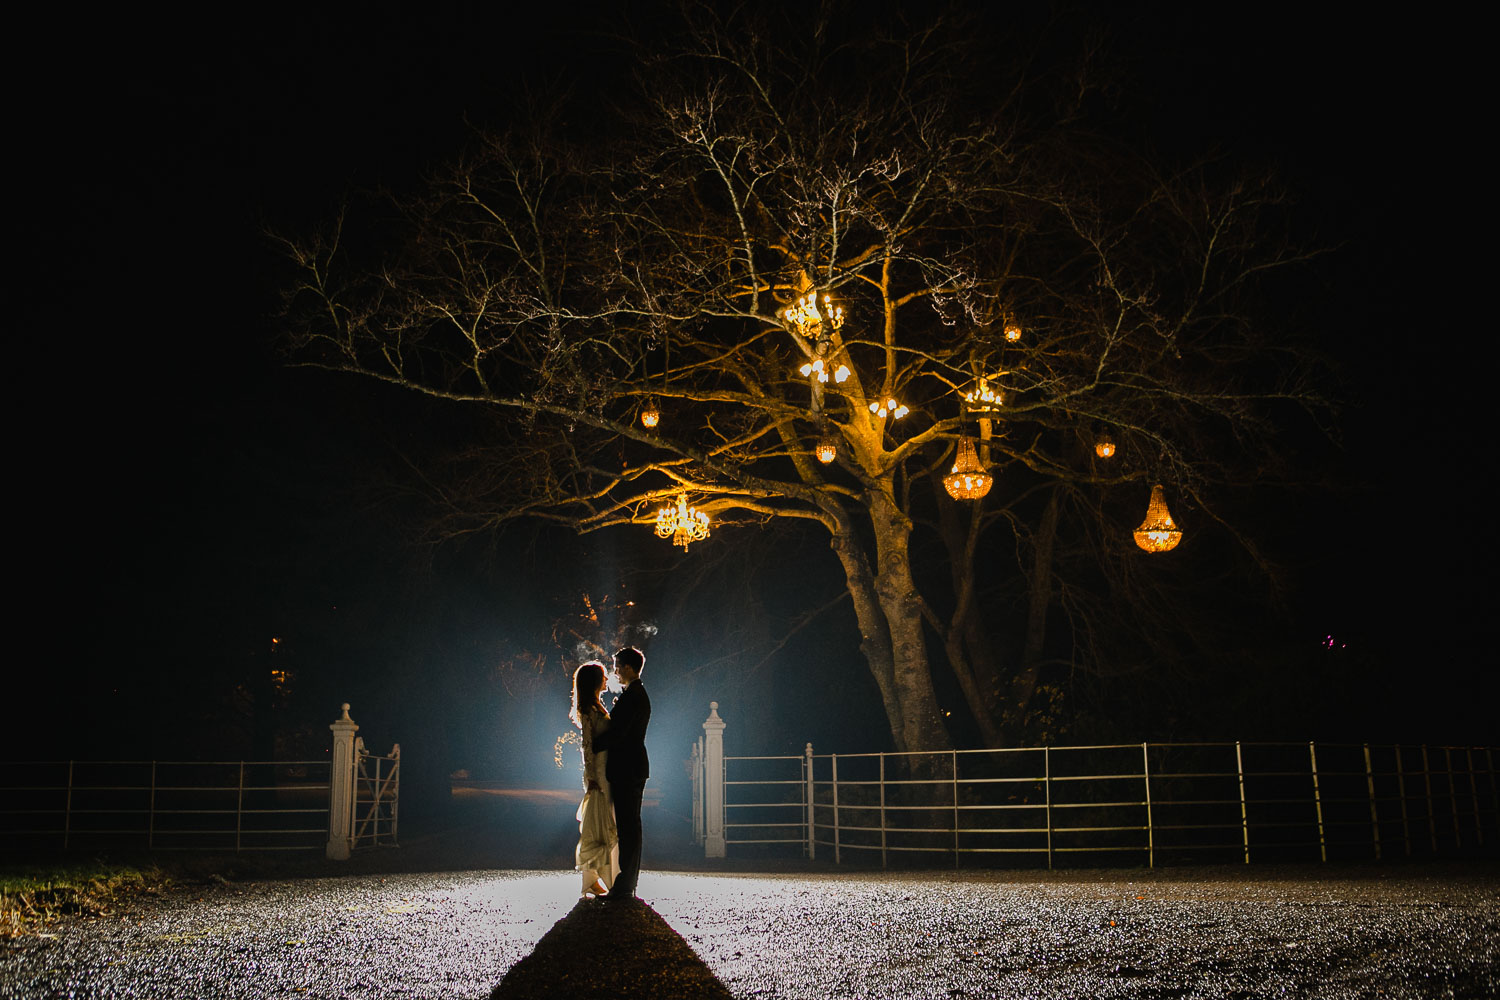 Night Time Photo of Bride and Groom with Chandelier Tree in Ballimagarvey Village